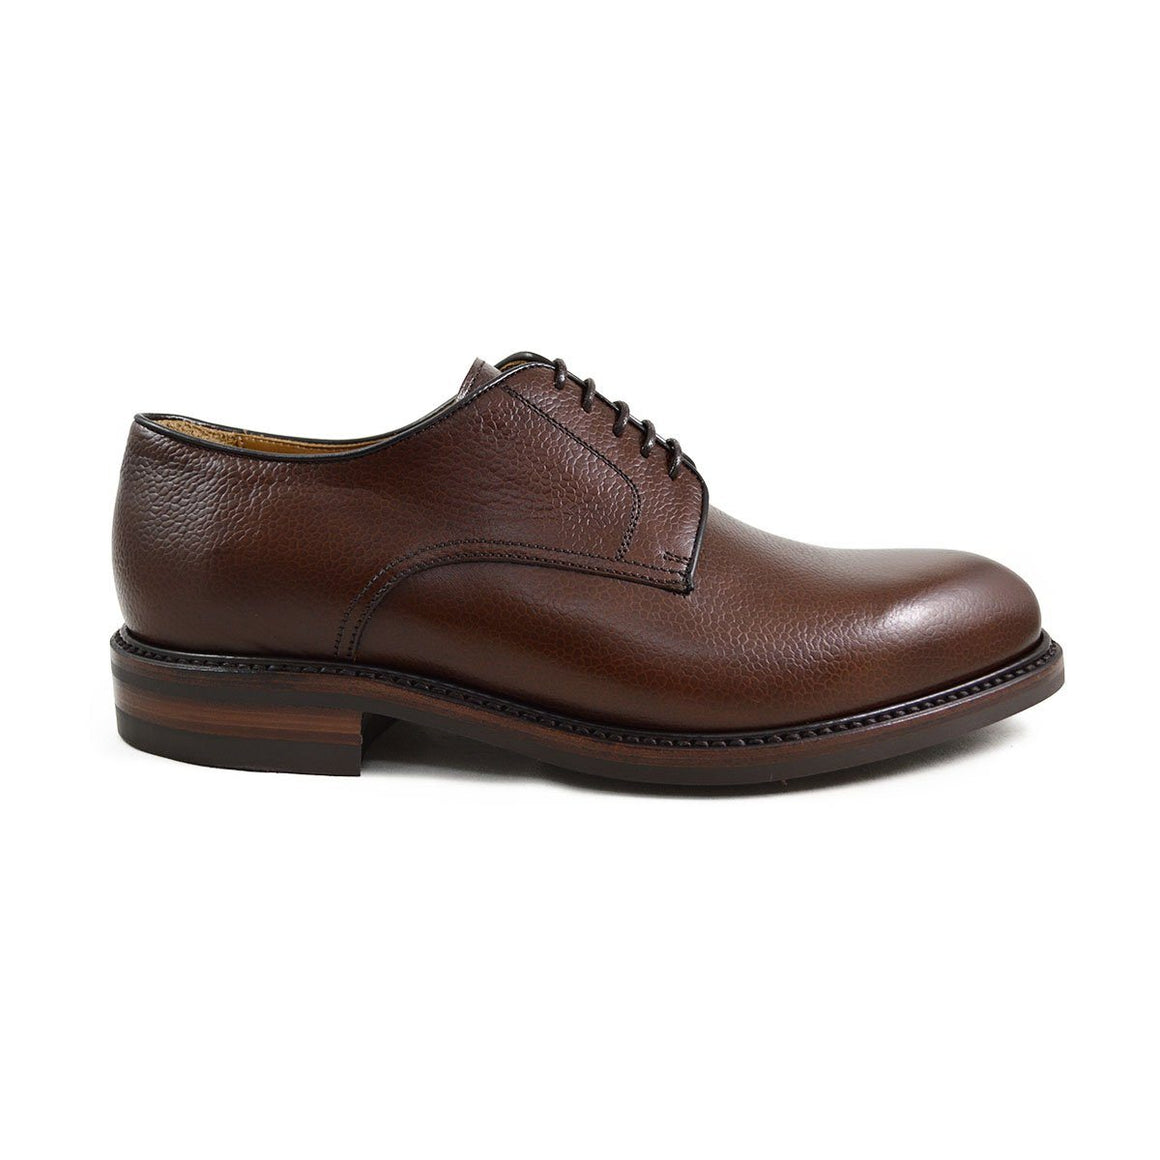 Berwick 1707 Country Grain Plain Derby Shoe